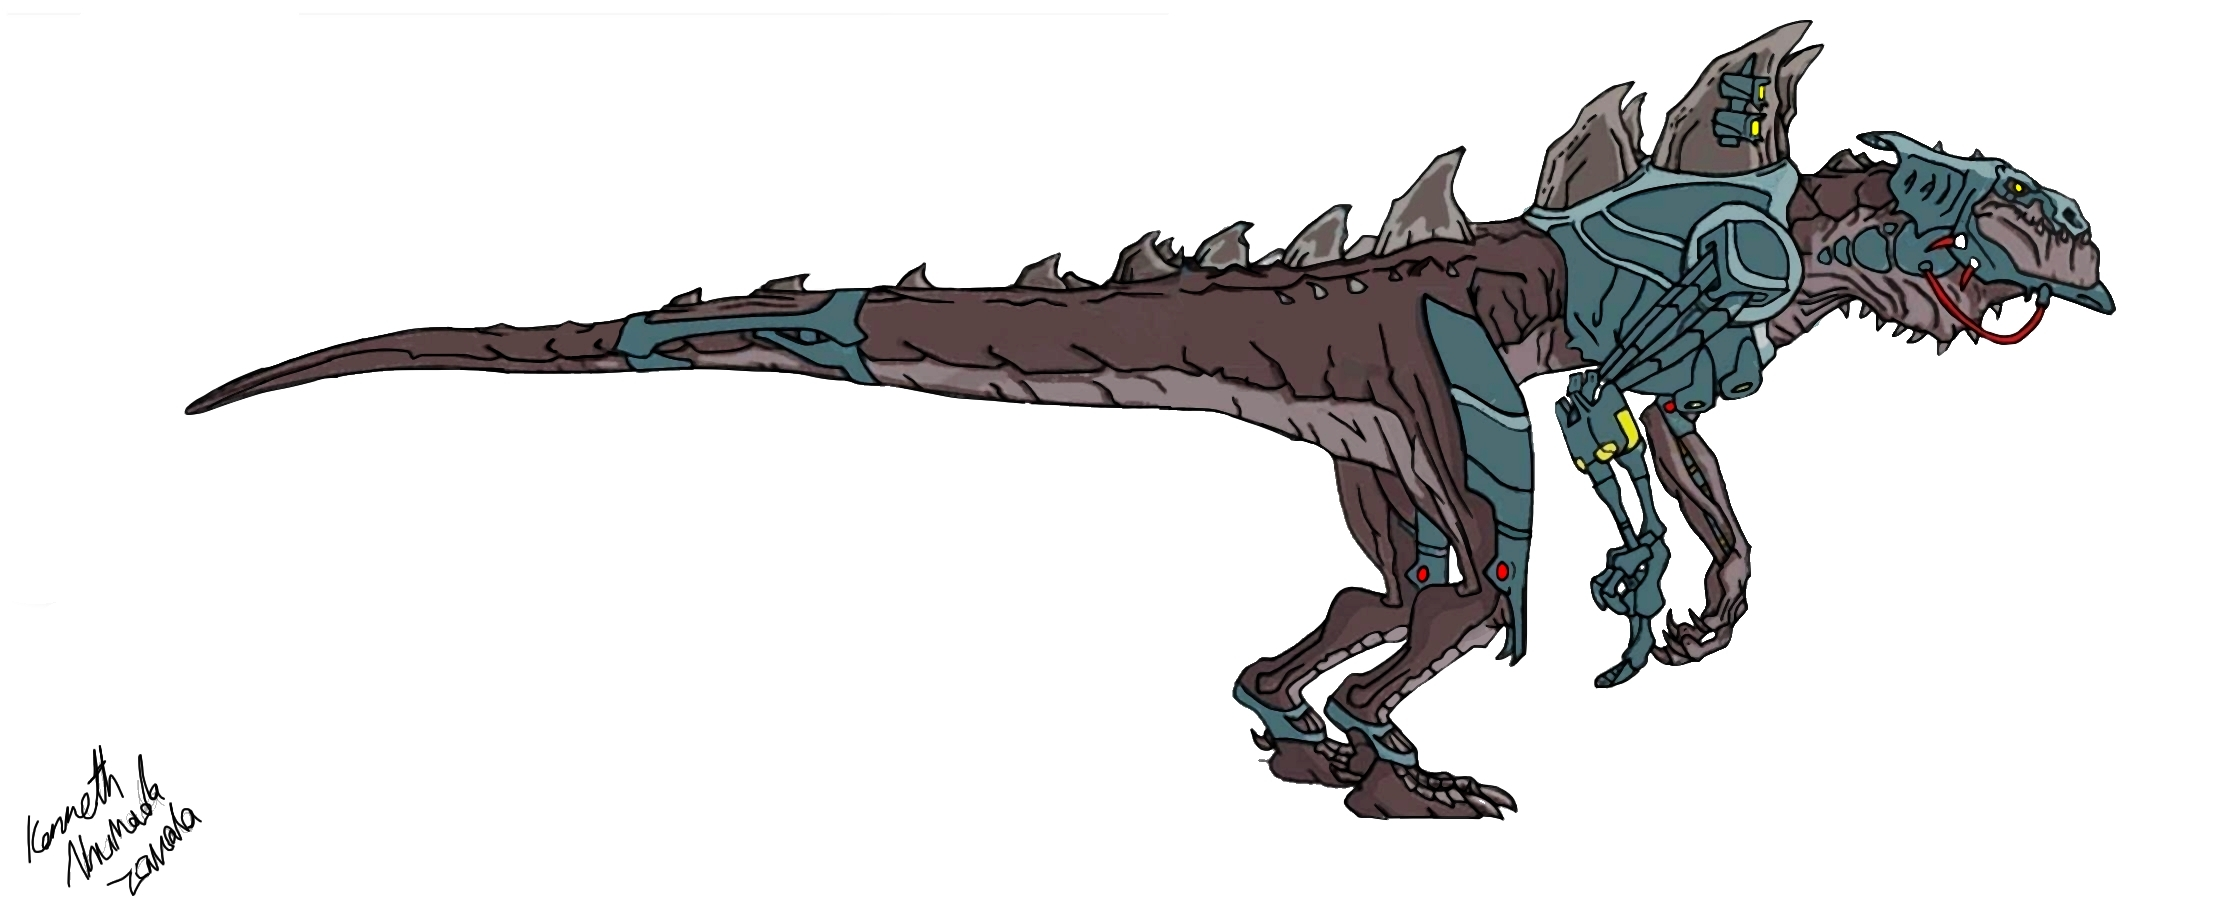 My Ideas For A Pacific Rim Sequel Through The Shattered Lens